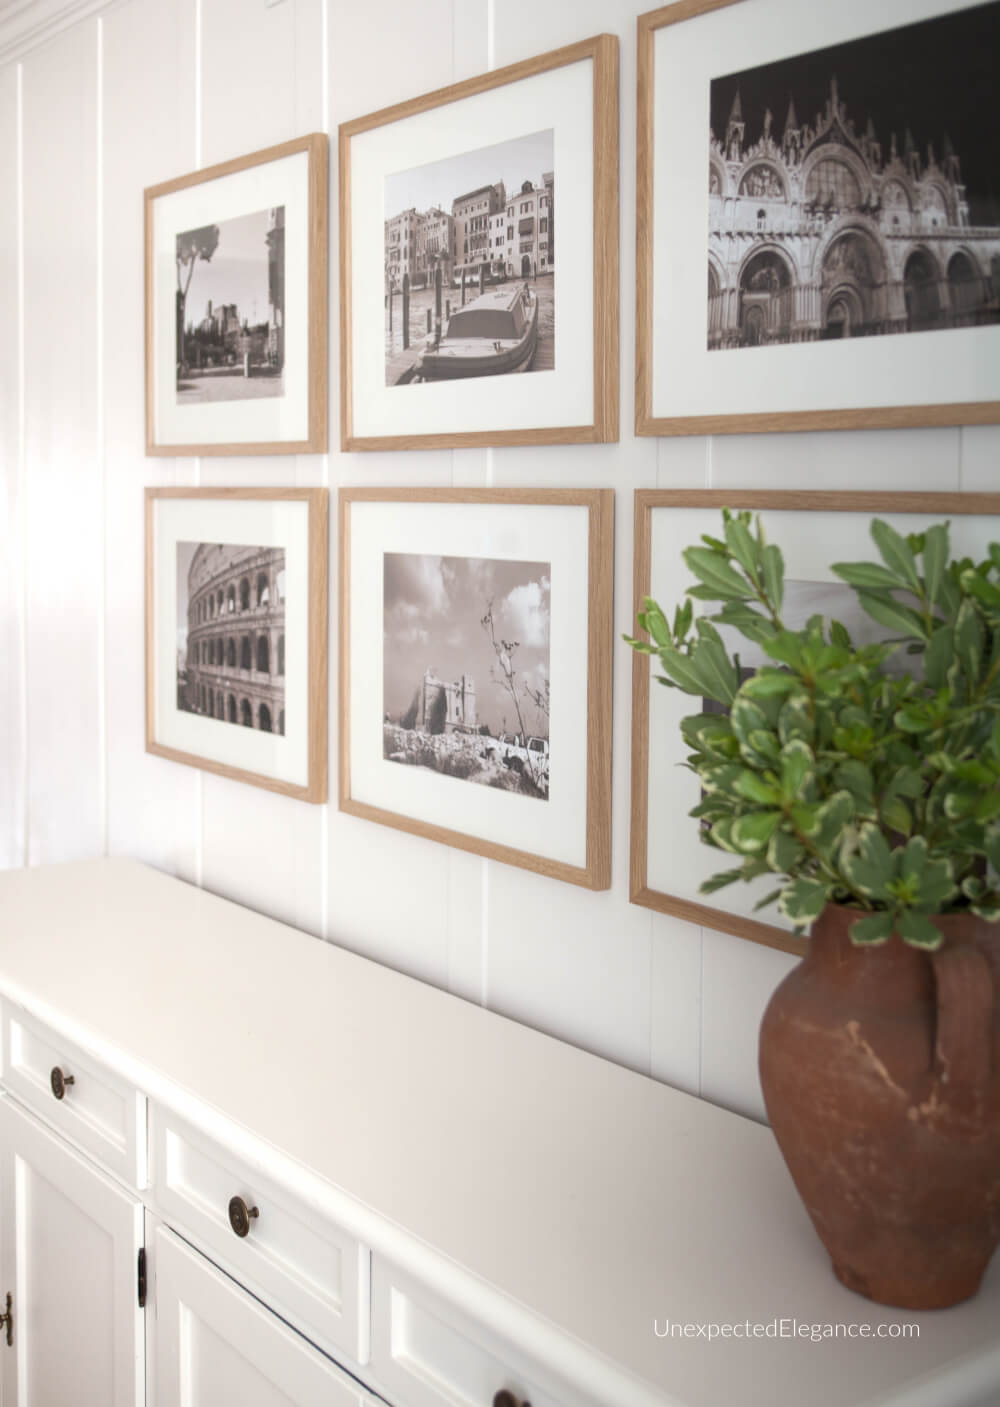 How to hang a gallery wall with simple artwork you create yourself.